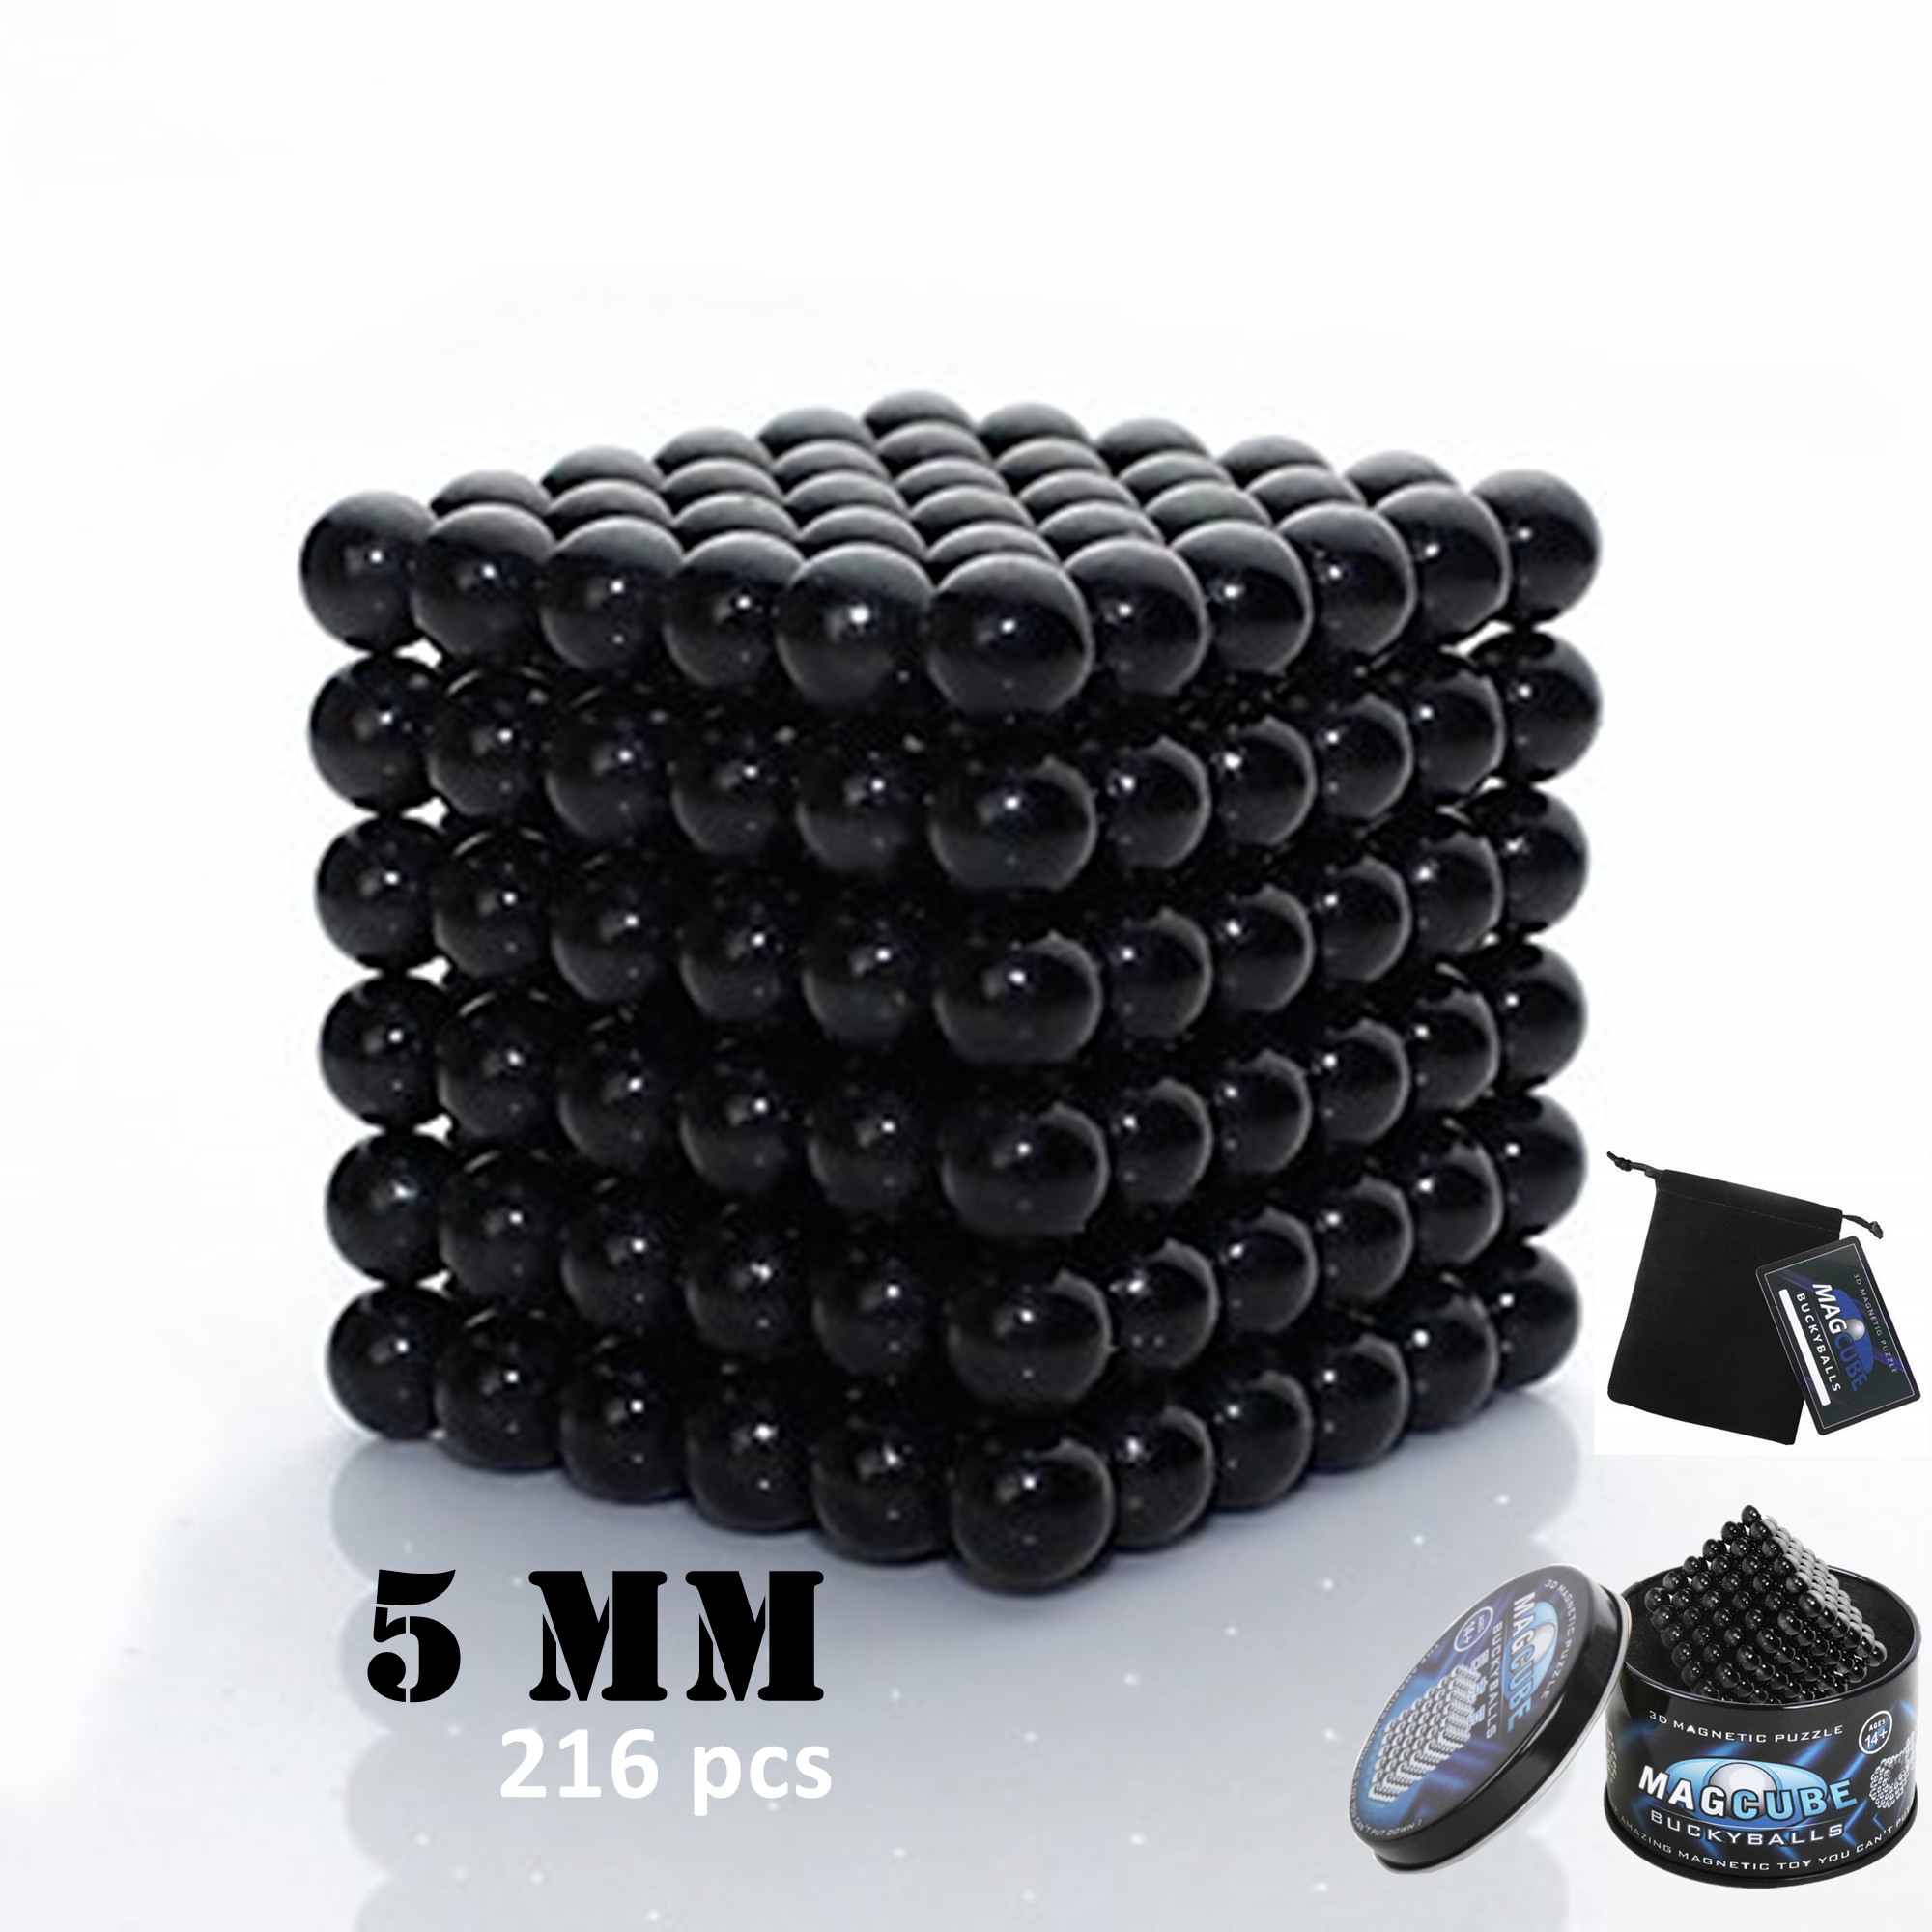 Black Color Set of 216 pcs (5 mm) Magnetic Balls Beads, Round Buildable Rollable Magnets, Stress Relief Desk... by